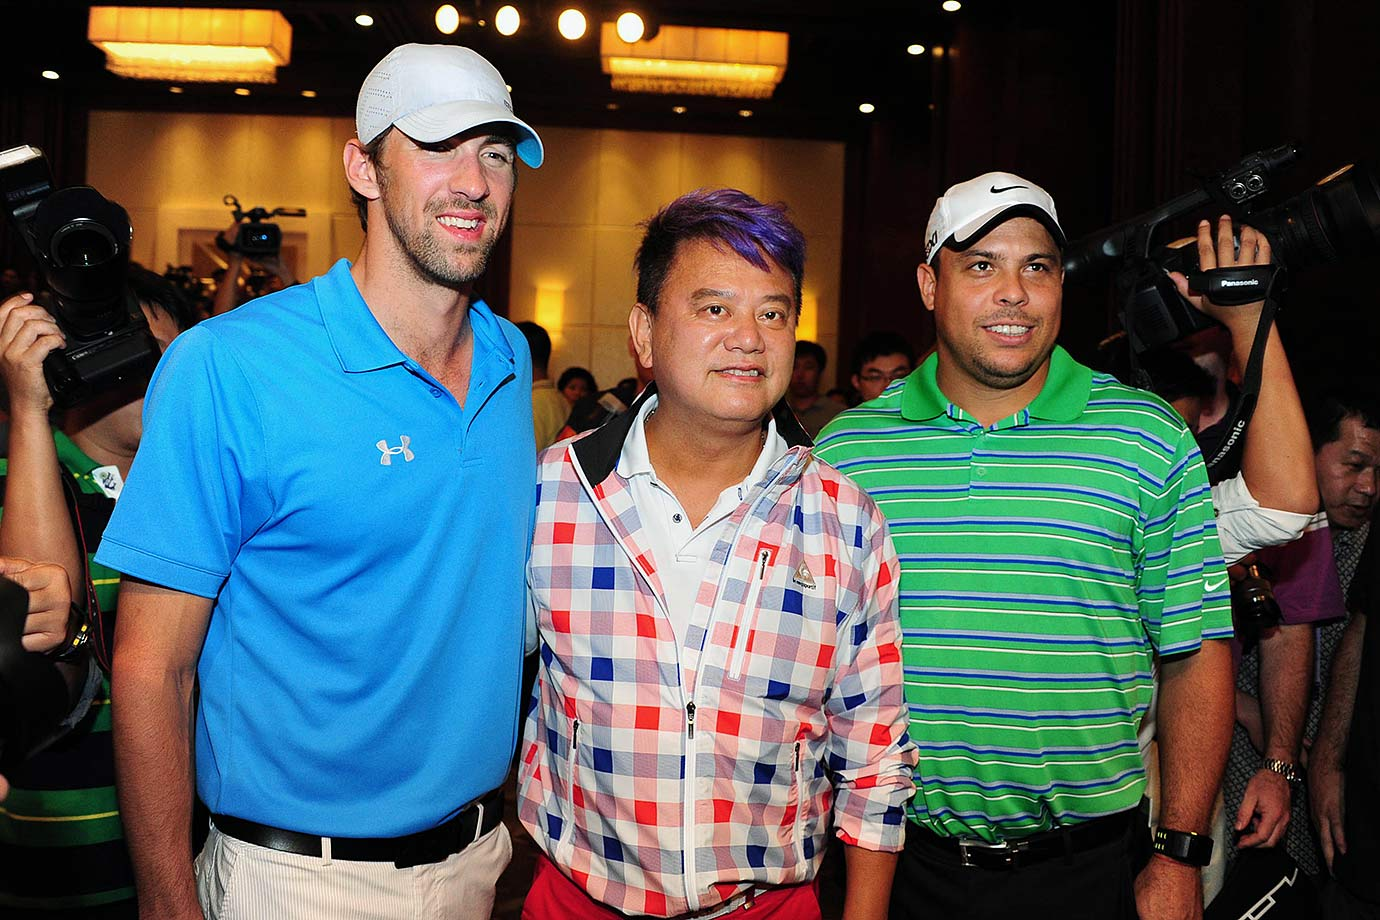 Michael Phelps, Natalis Chan and Ronaldo attend a press conference at the Mission Hills Golf Club in Haikou, China, in 2012.